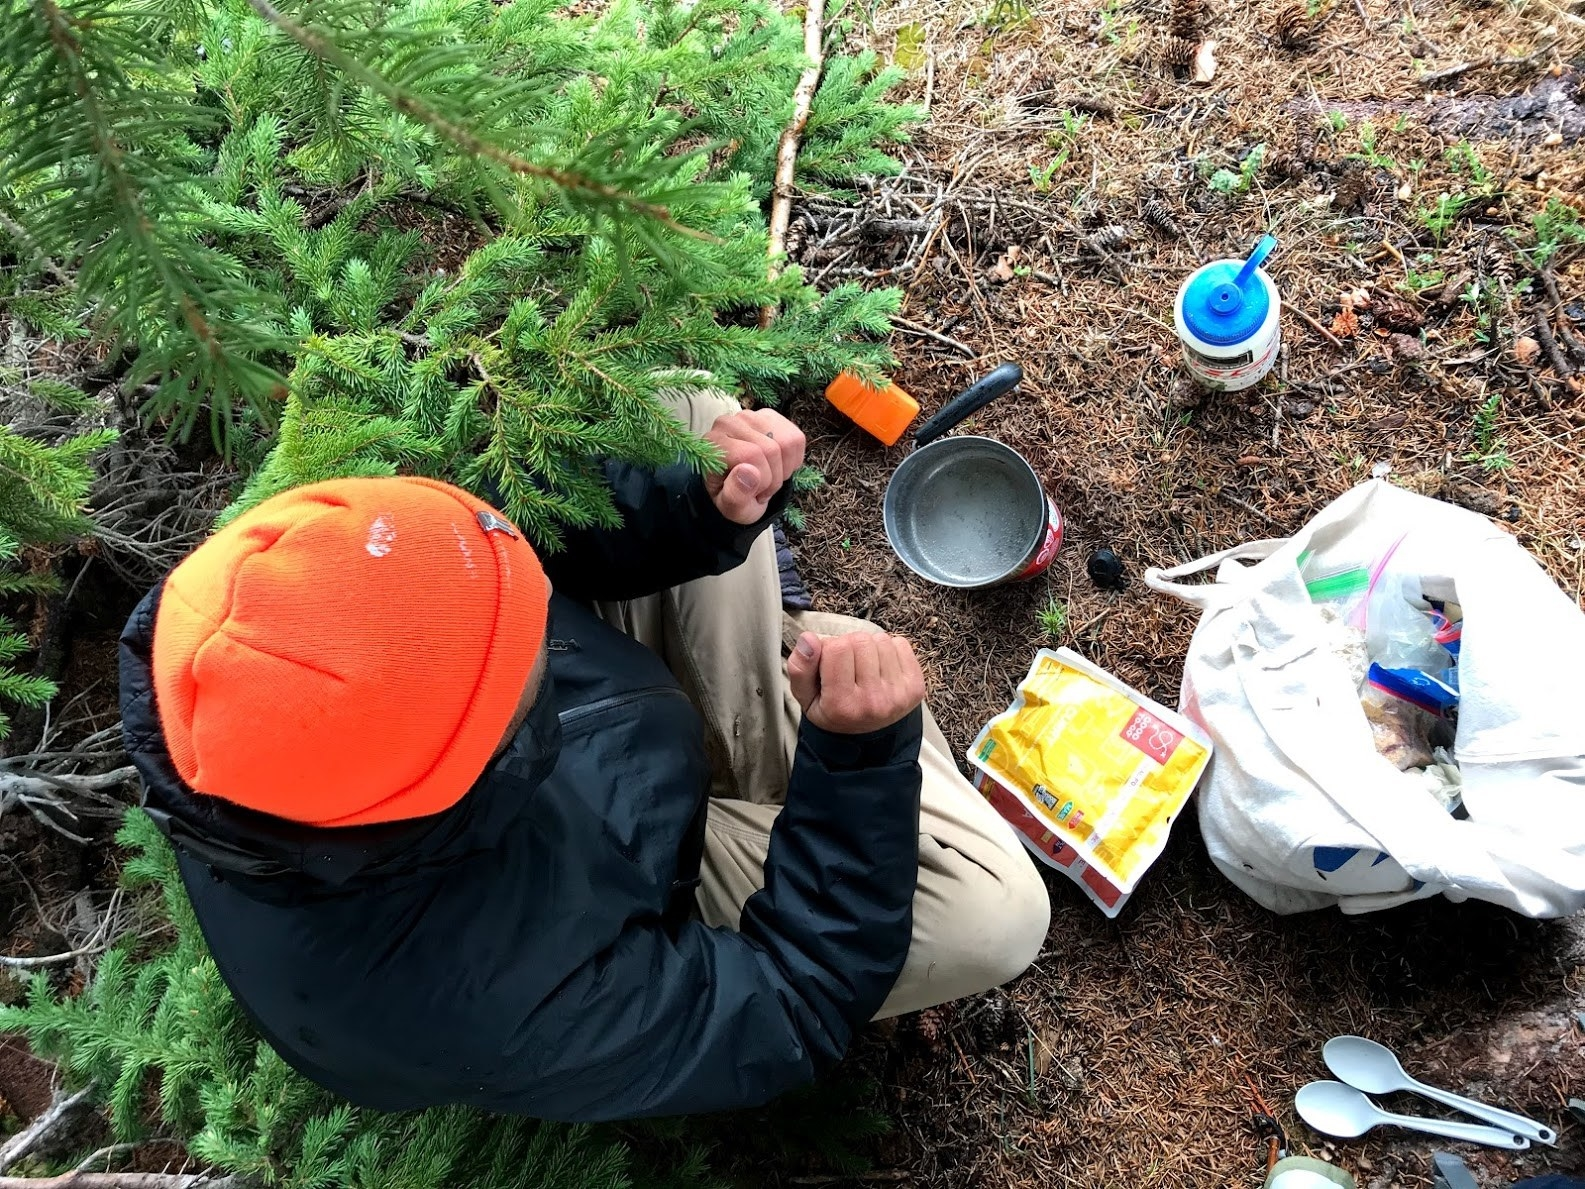 bird's eye view of a person sitting outside on the ground preparing to cook dinner on a small camping stove